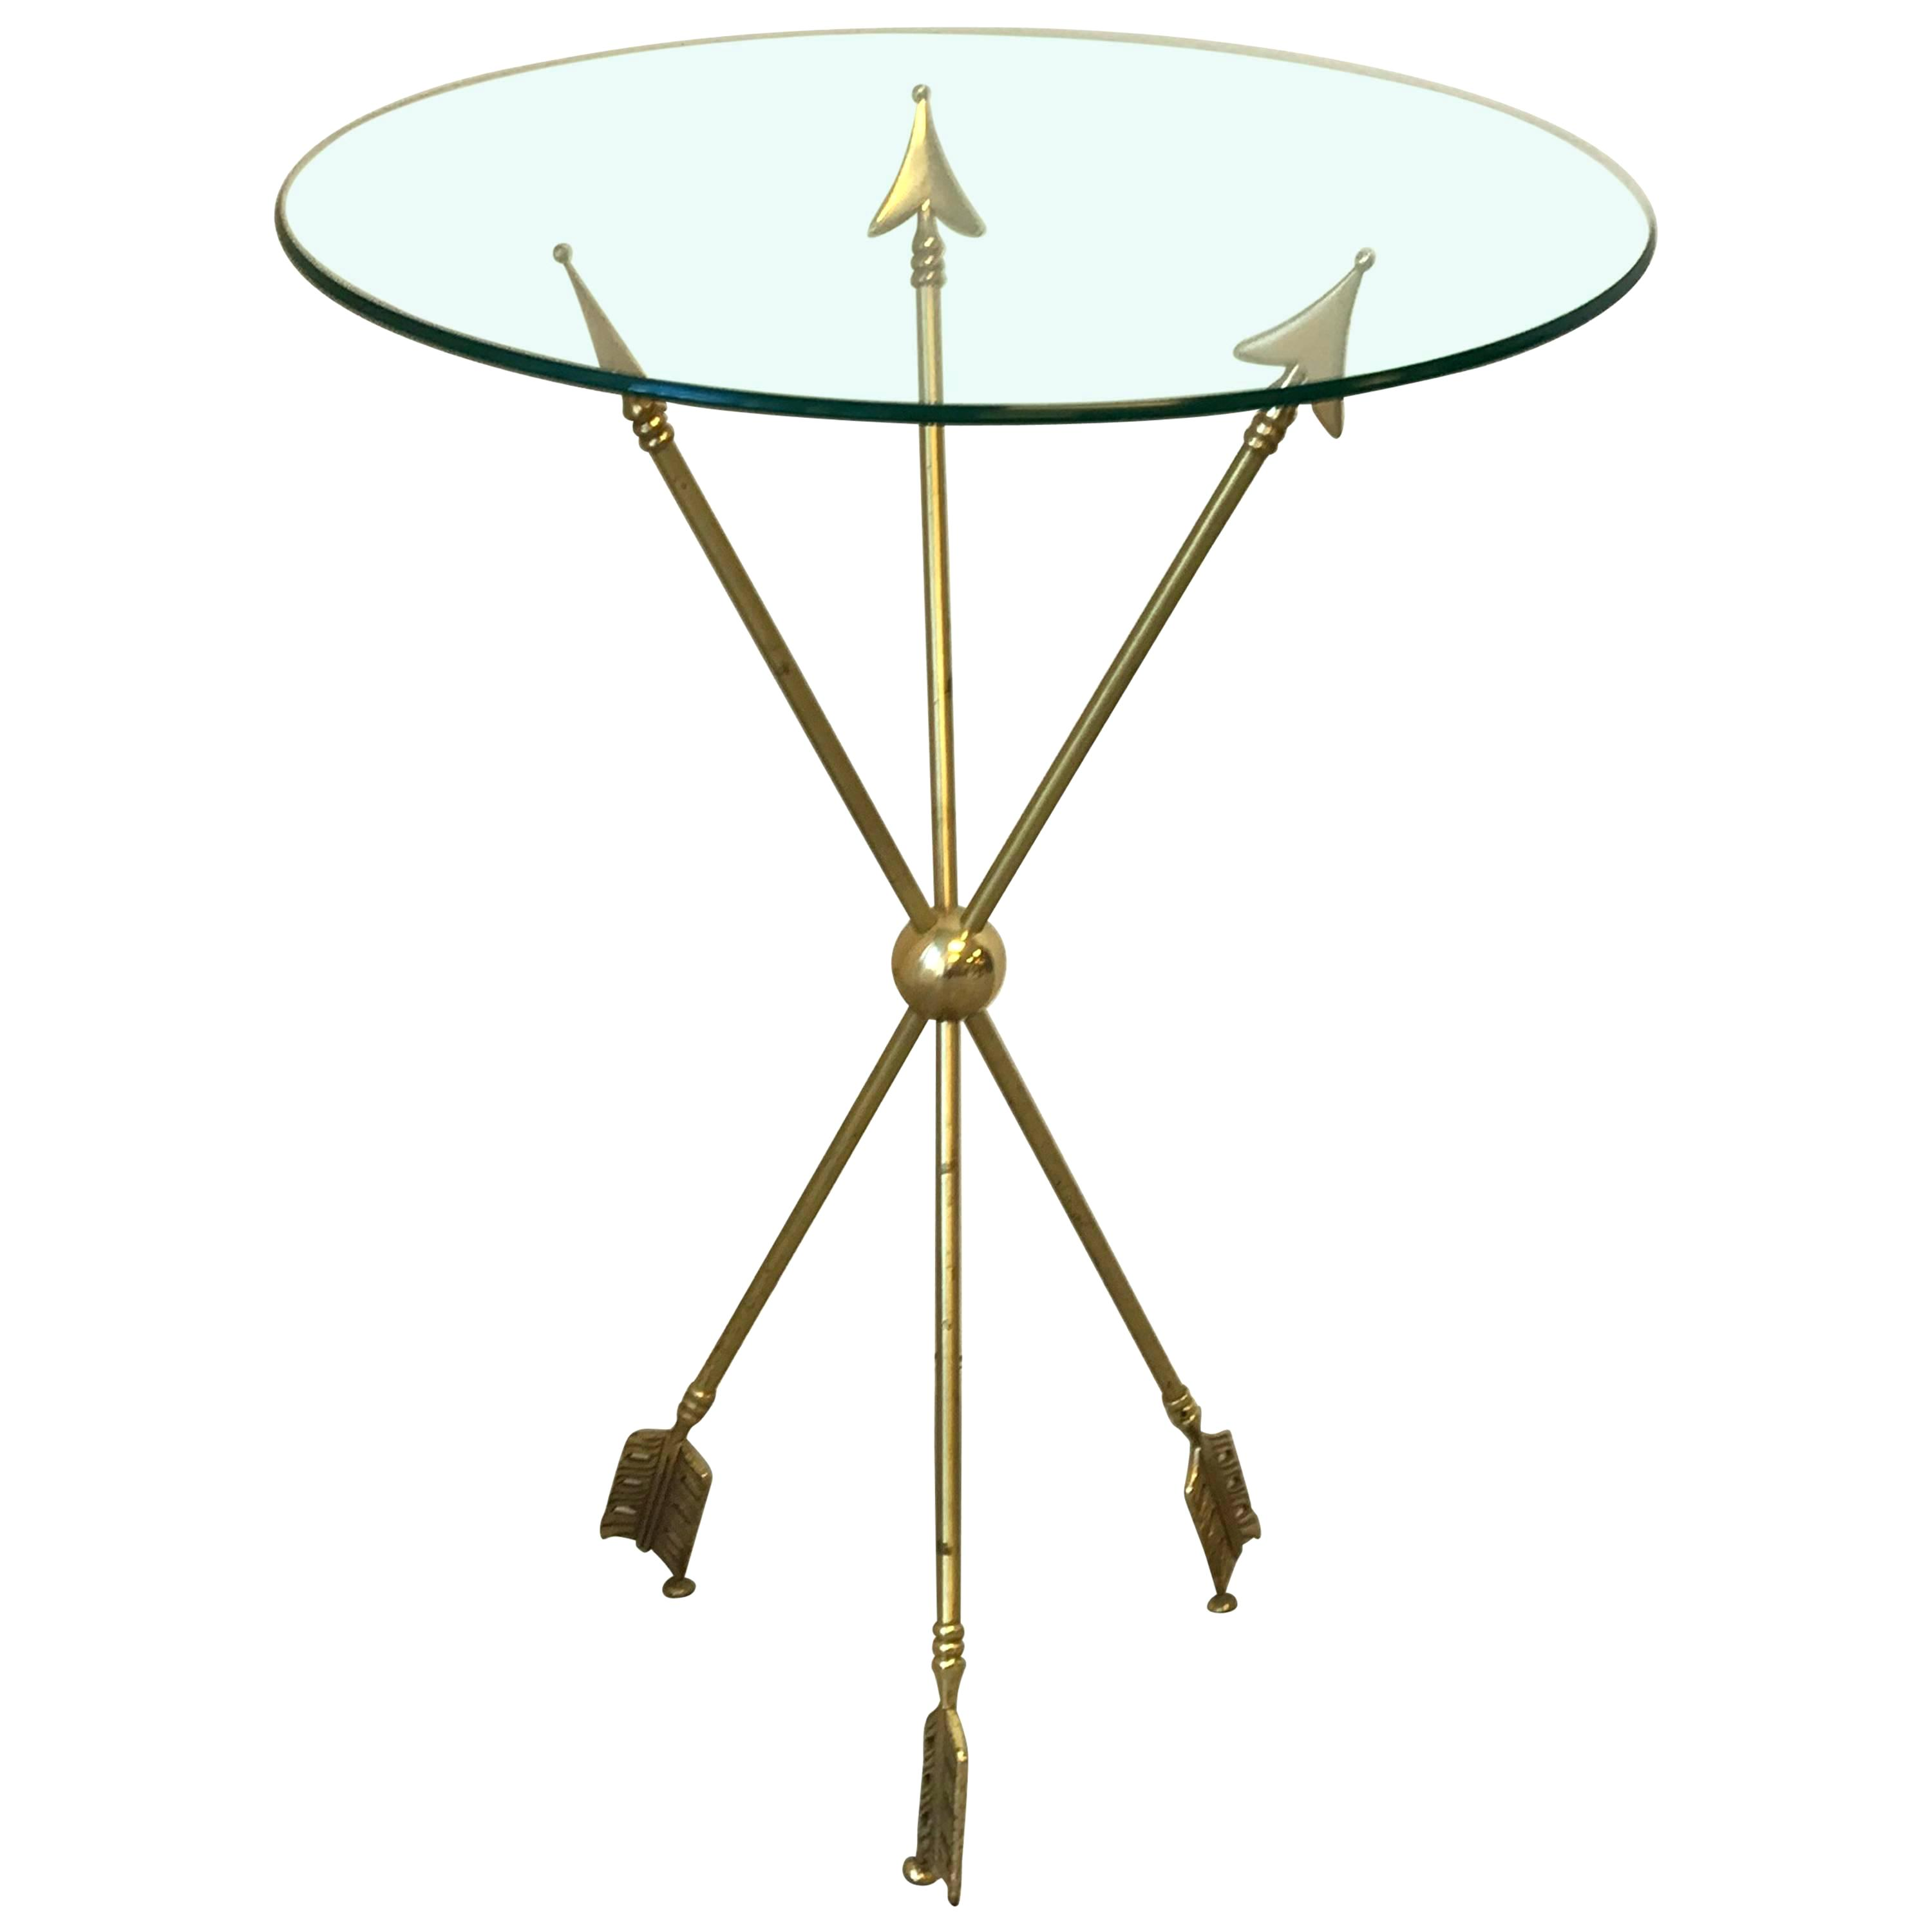 brass accent table vinnymo arrow for threshold cage metal narrow coffee with storage blue and white porcelain lamps waterproof cover garden chairs buffet sideboard pink runner